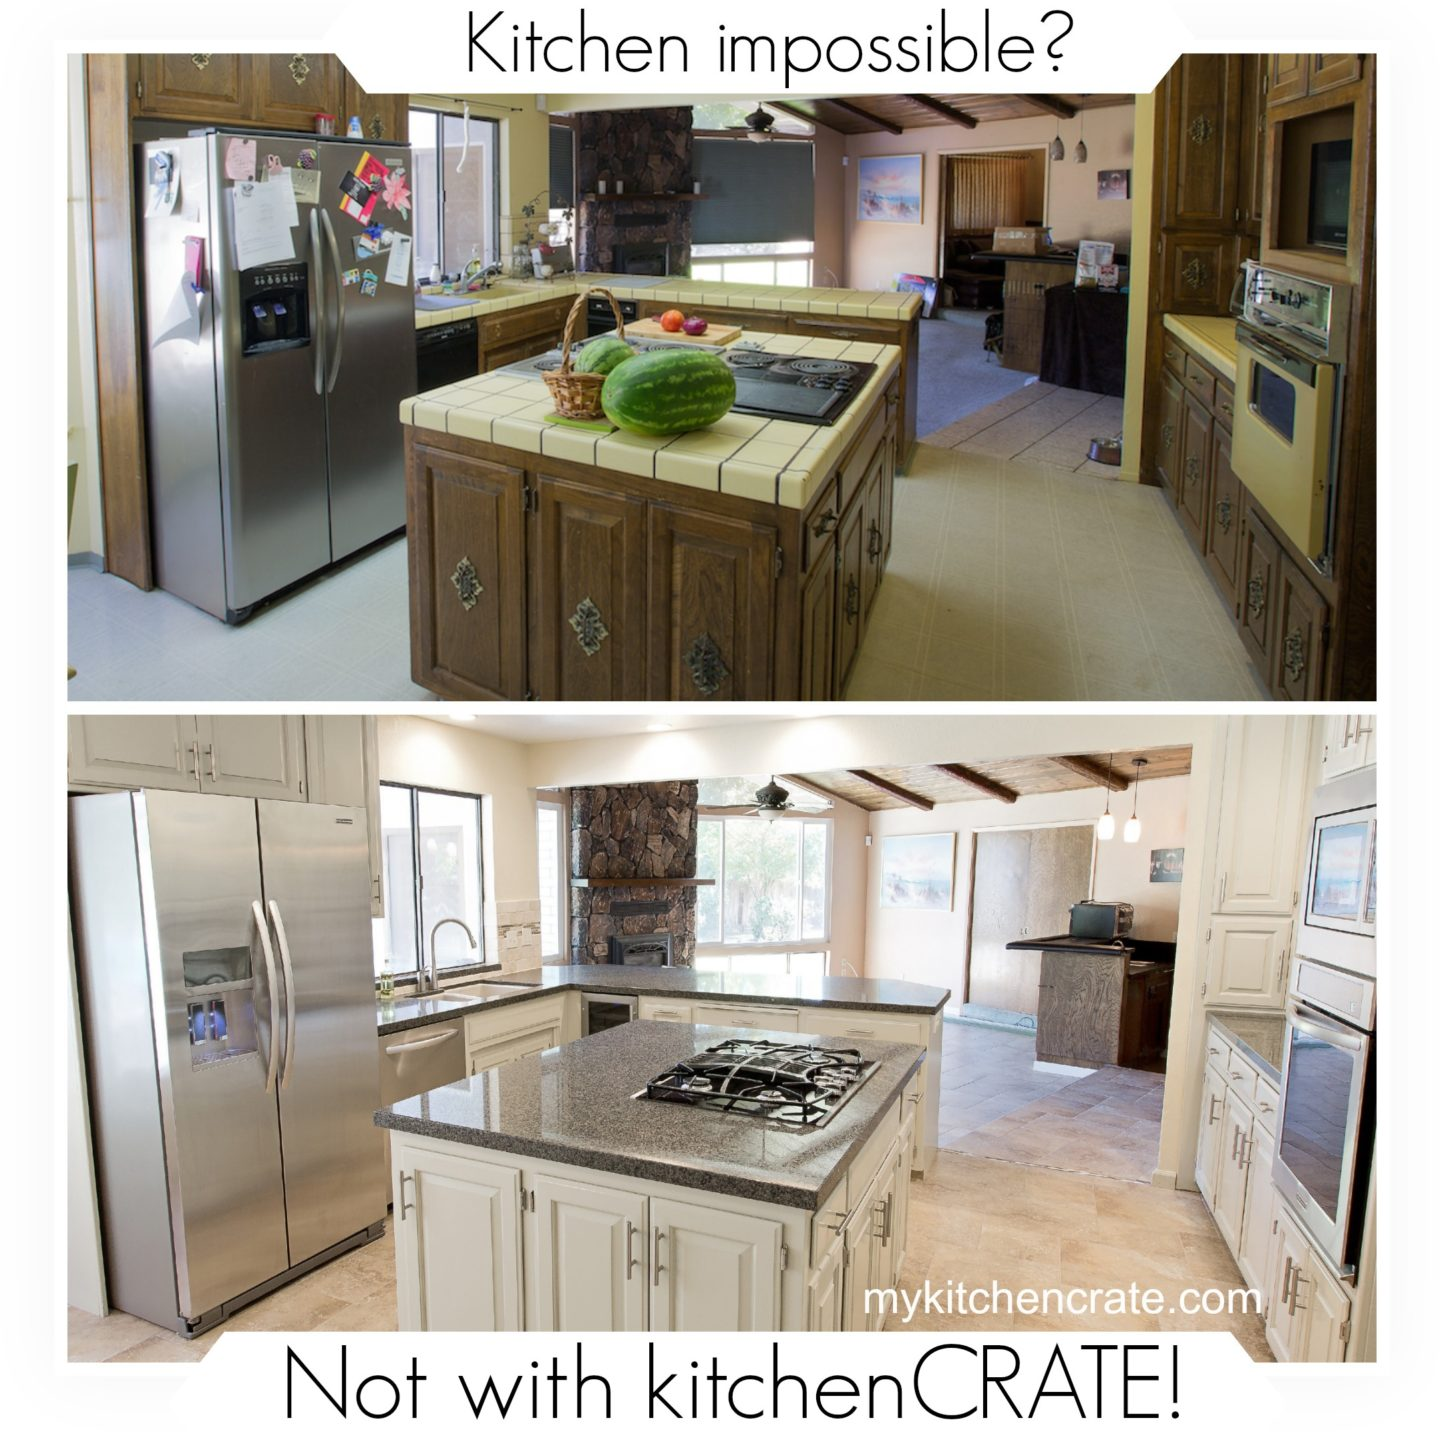 Kitchen Impossible Idee: Kitchen Impossible? Not With KitchenCRATE!